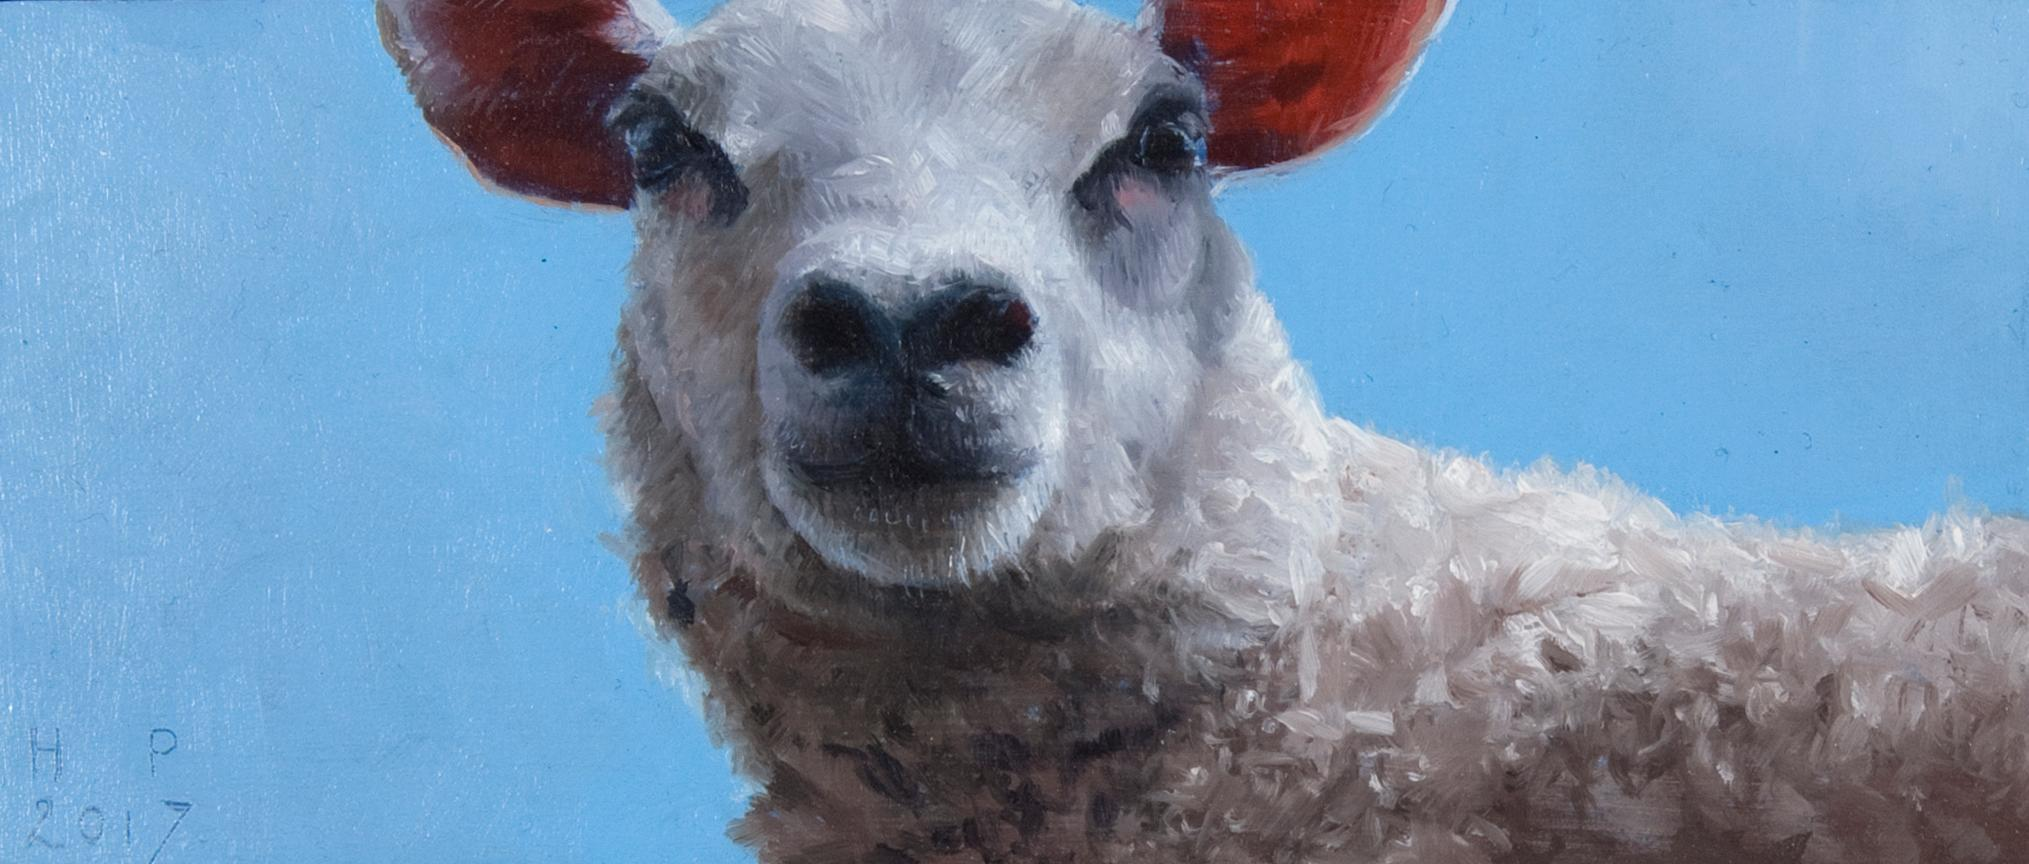 Sheep- 21st Century Contemporary Animal Painting of a Dutch Sheep